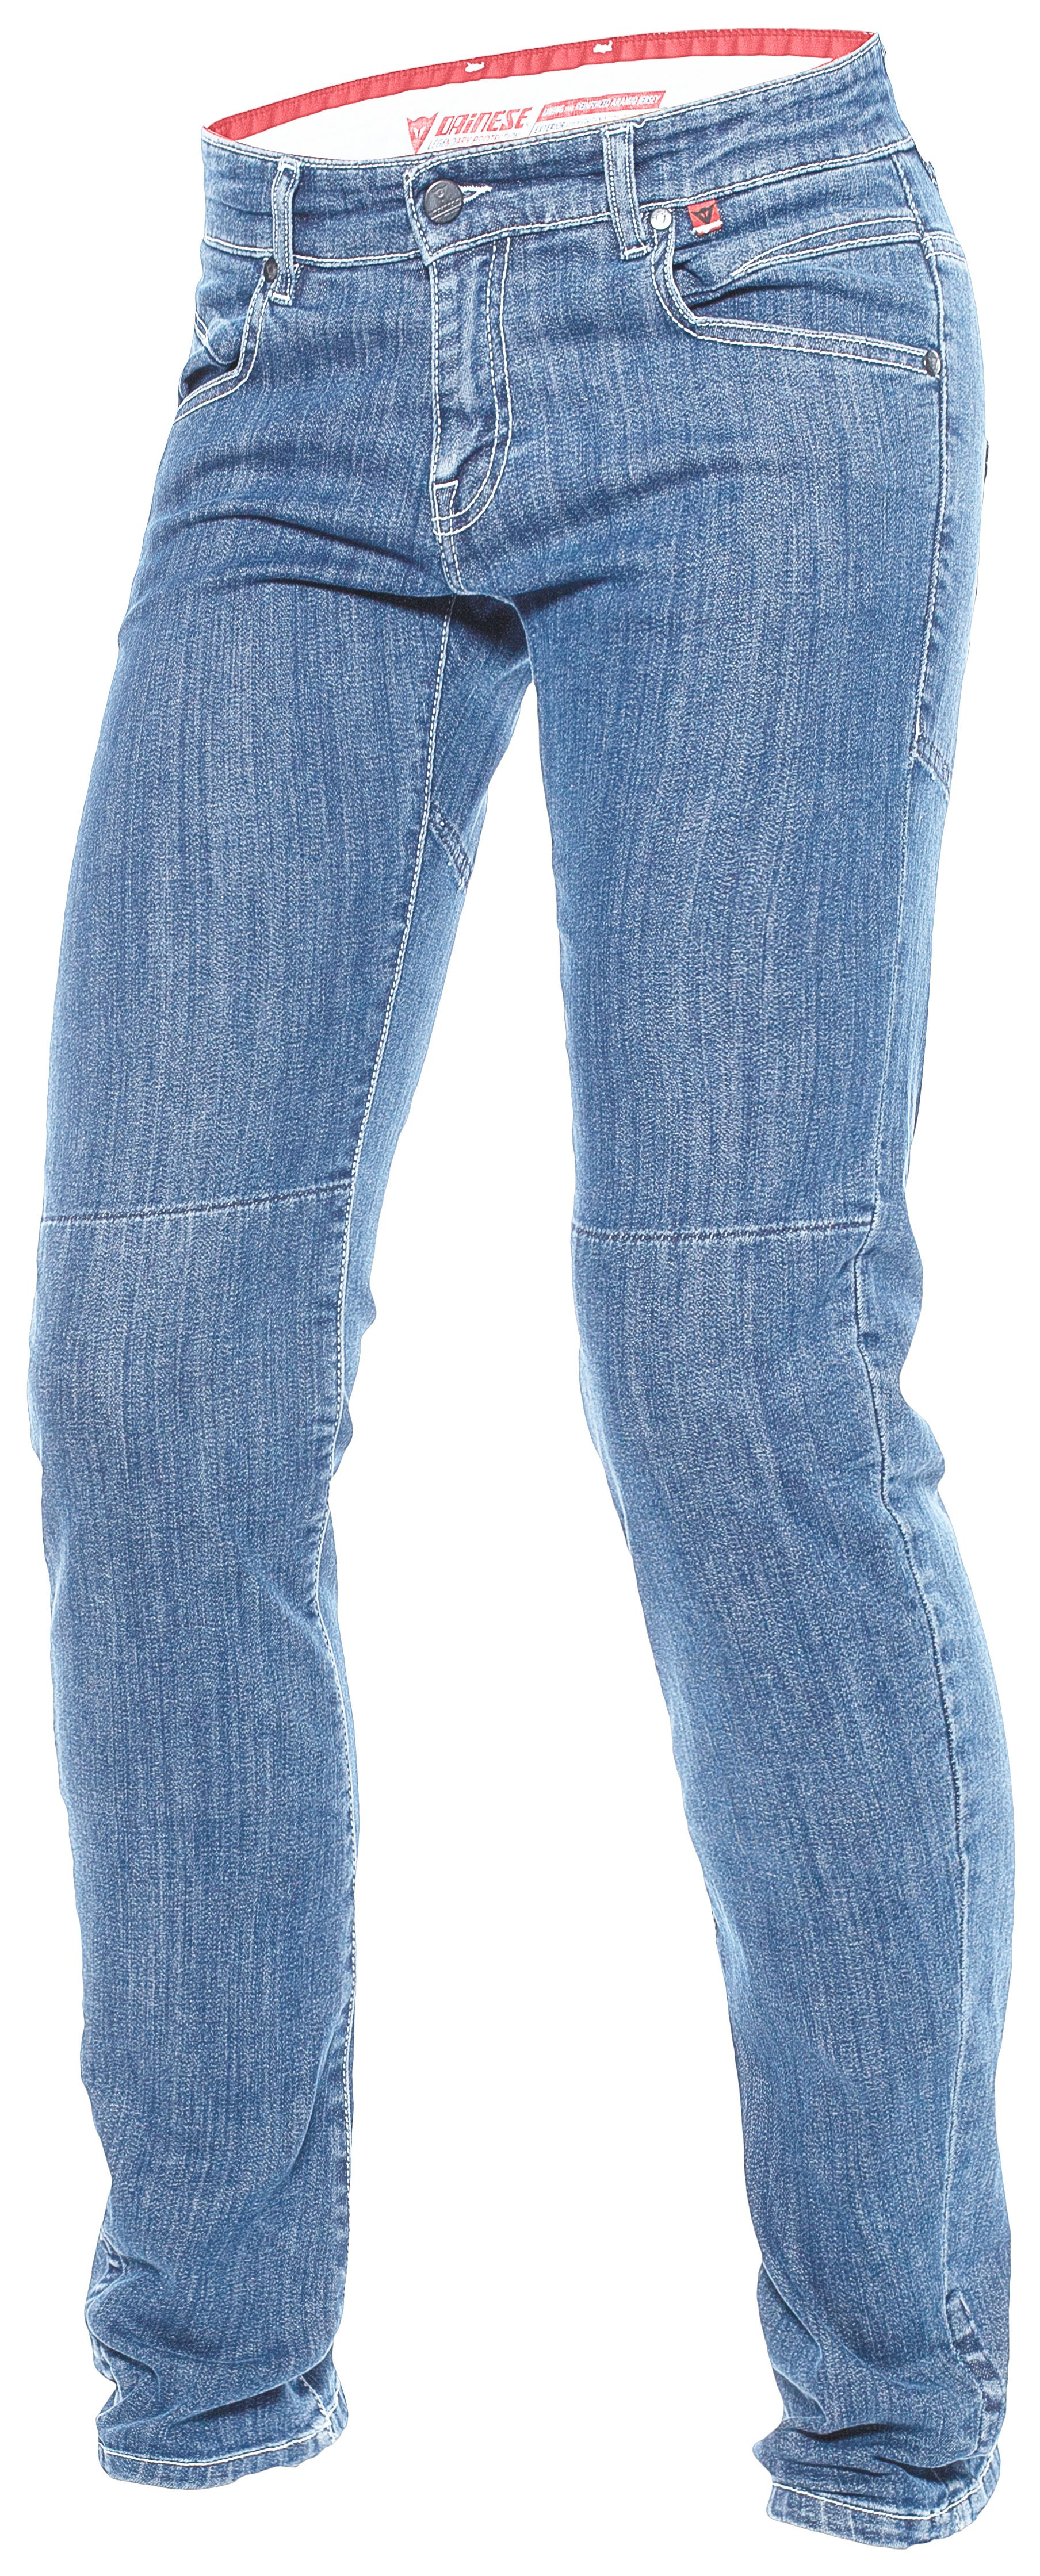 Pro Taper Handlebars >> Dainese Kateville Women's Jeans [Size 24 Only] - Cycle Gear